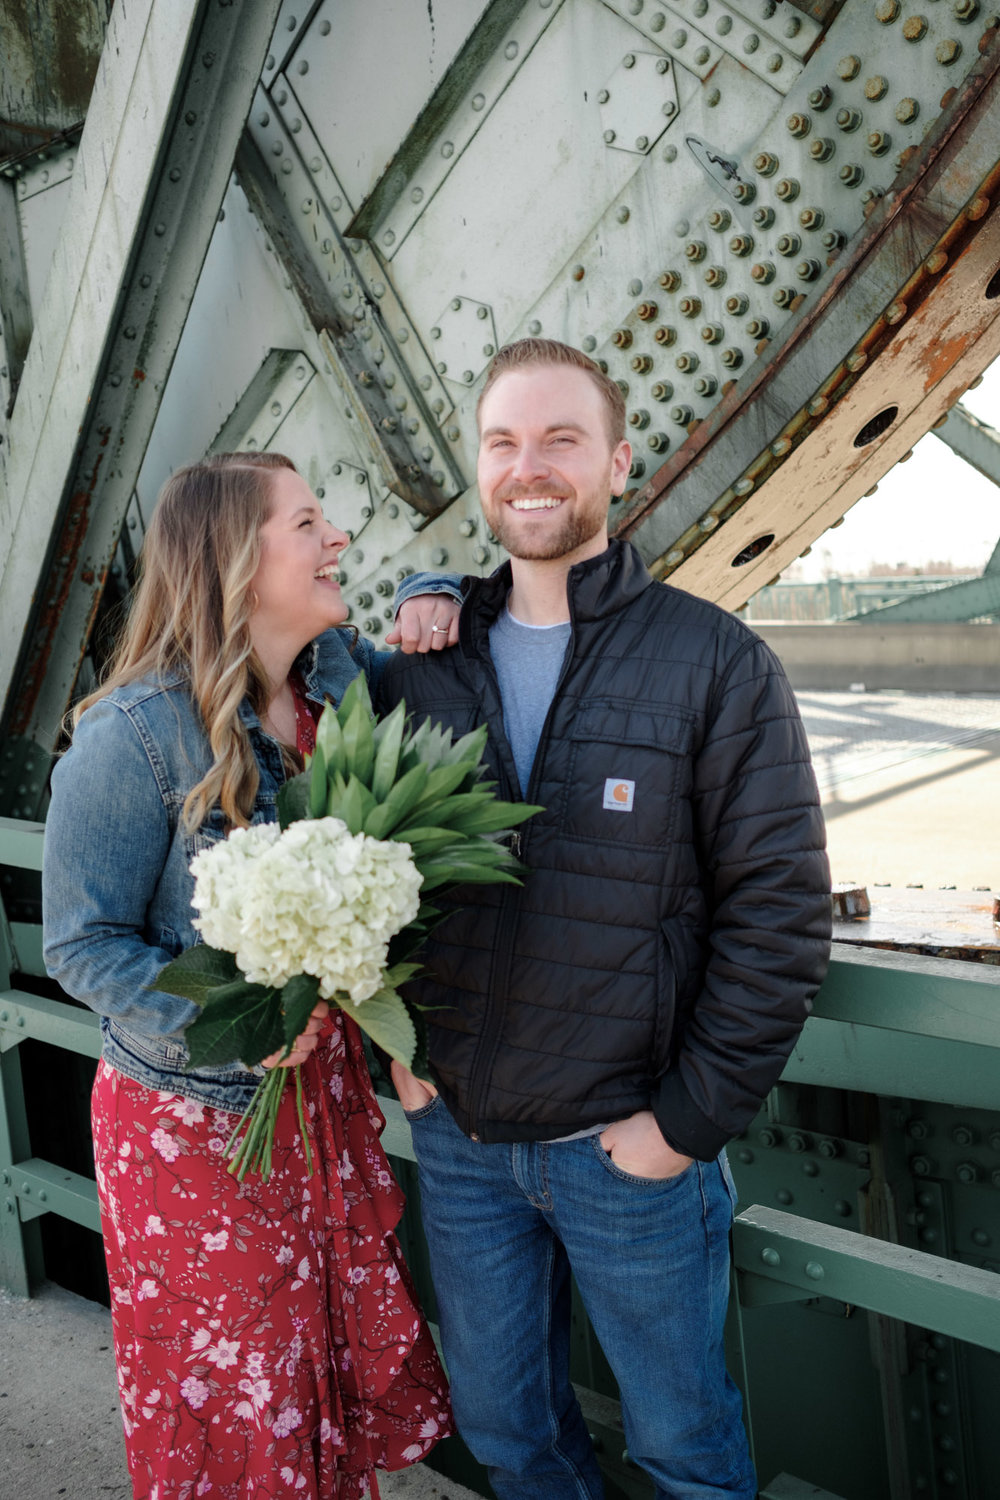 Engagement photos in downtown Joliet along the river